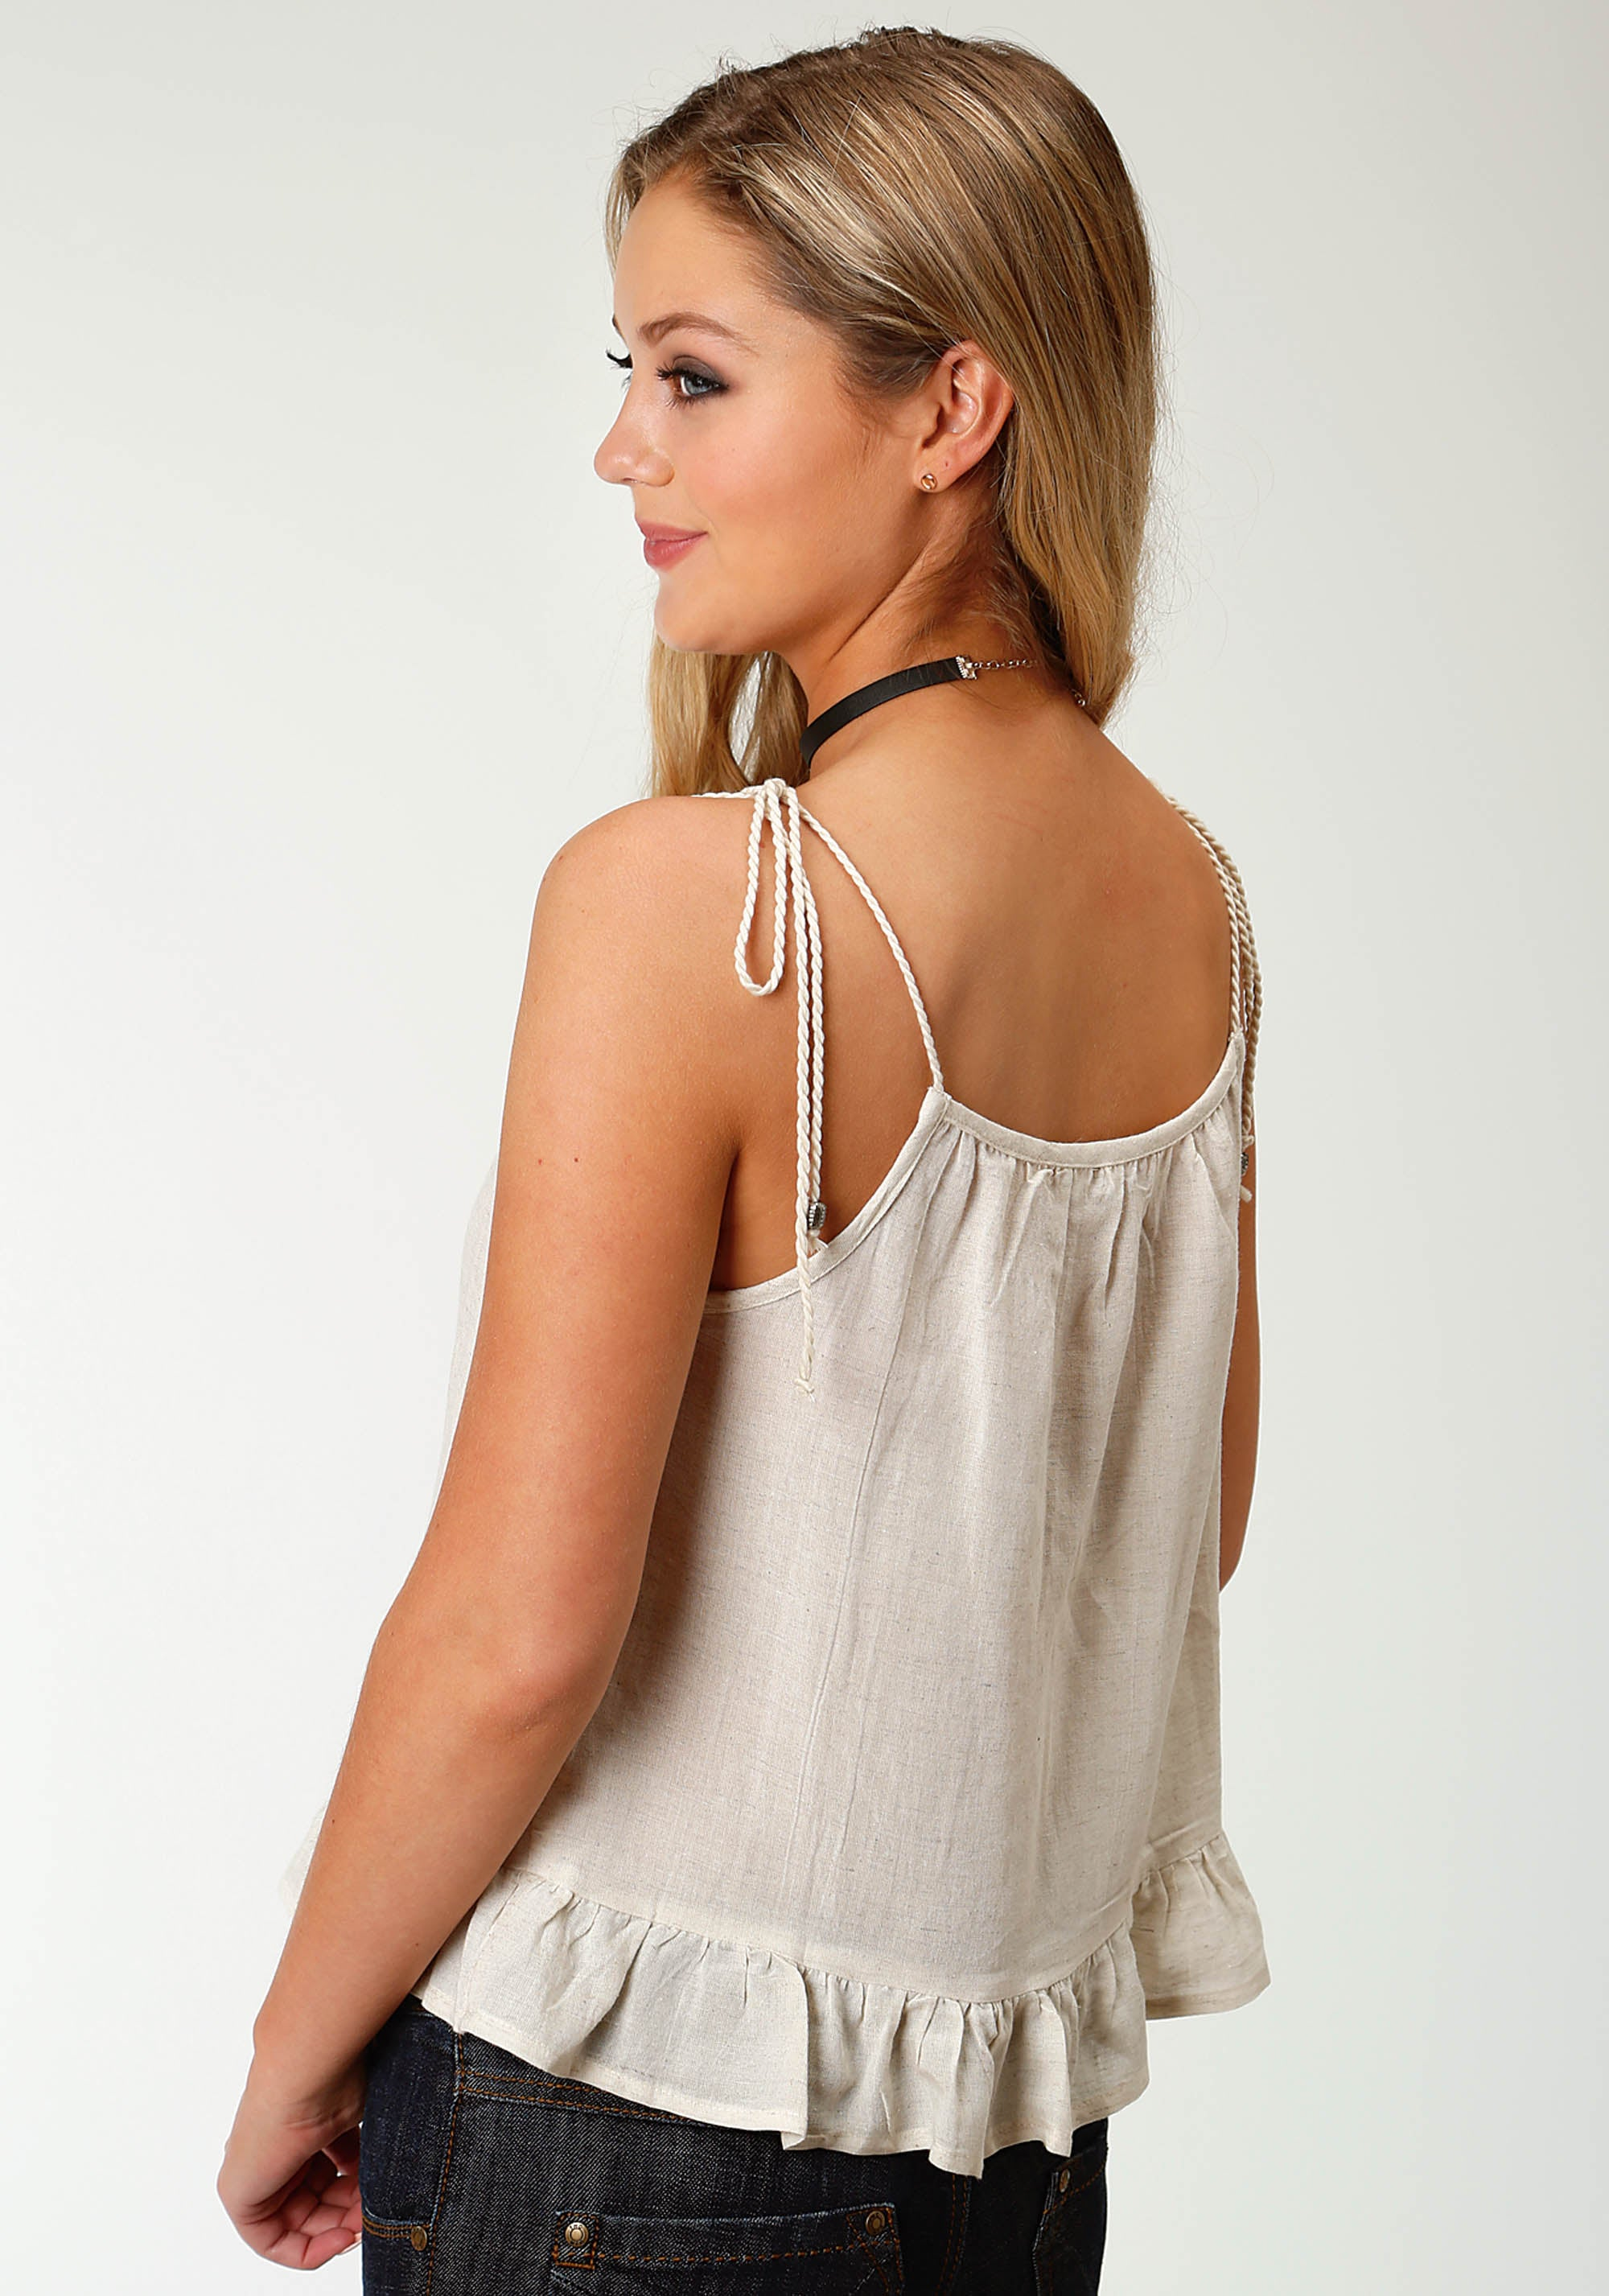 ROPER WOMENS WHITE 3005 COTTON TANK FIVE STAR COLLECTION- SPRING III SLEEVELESS